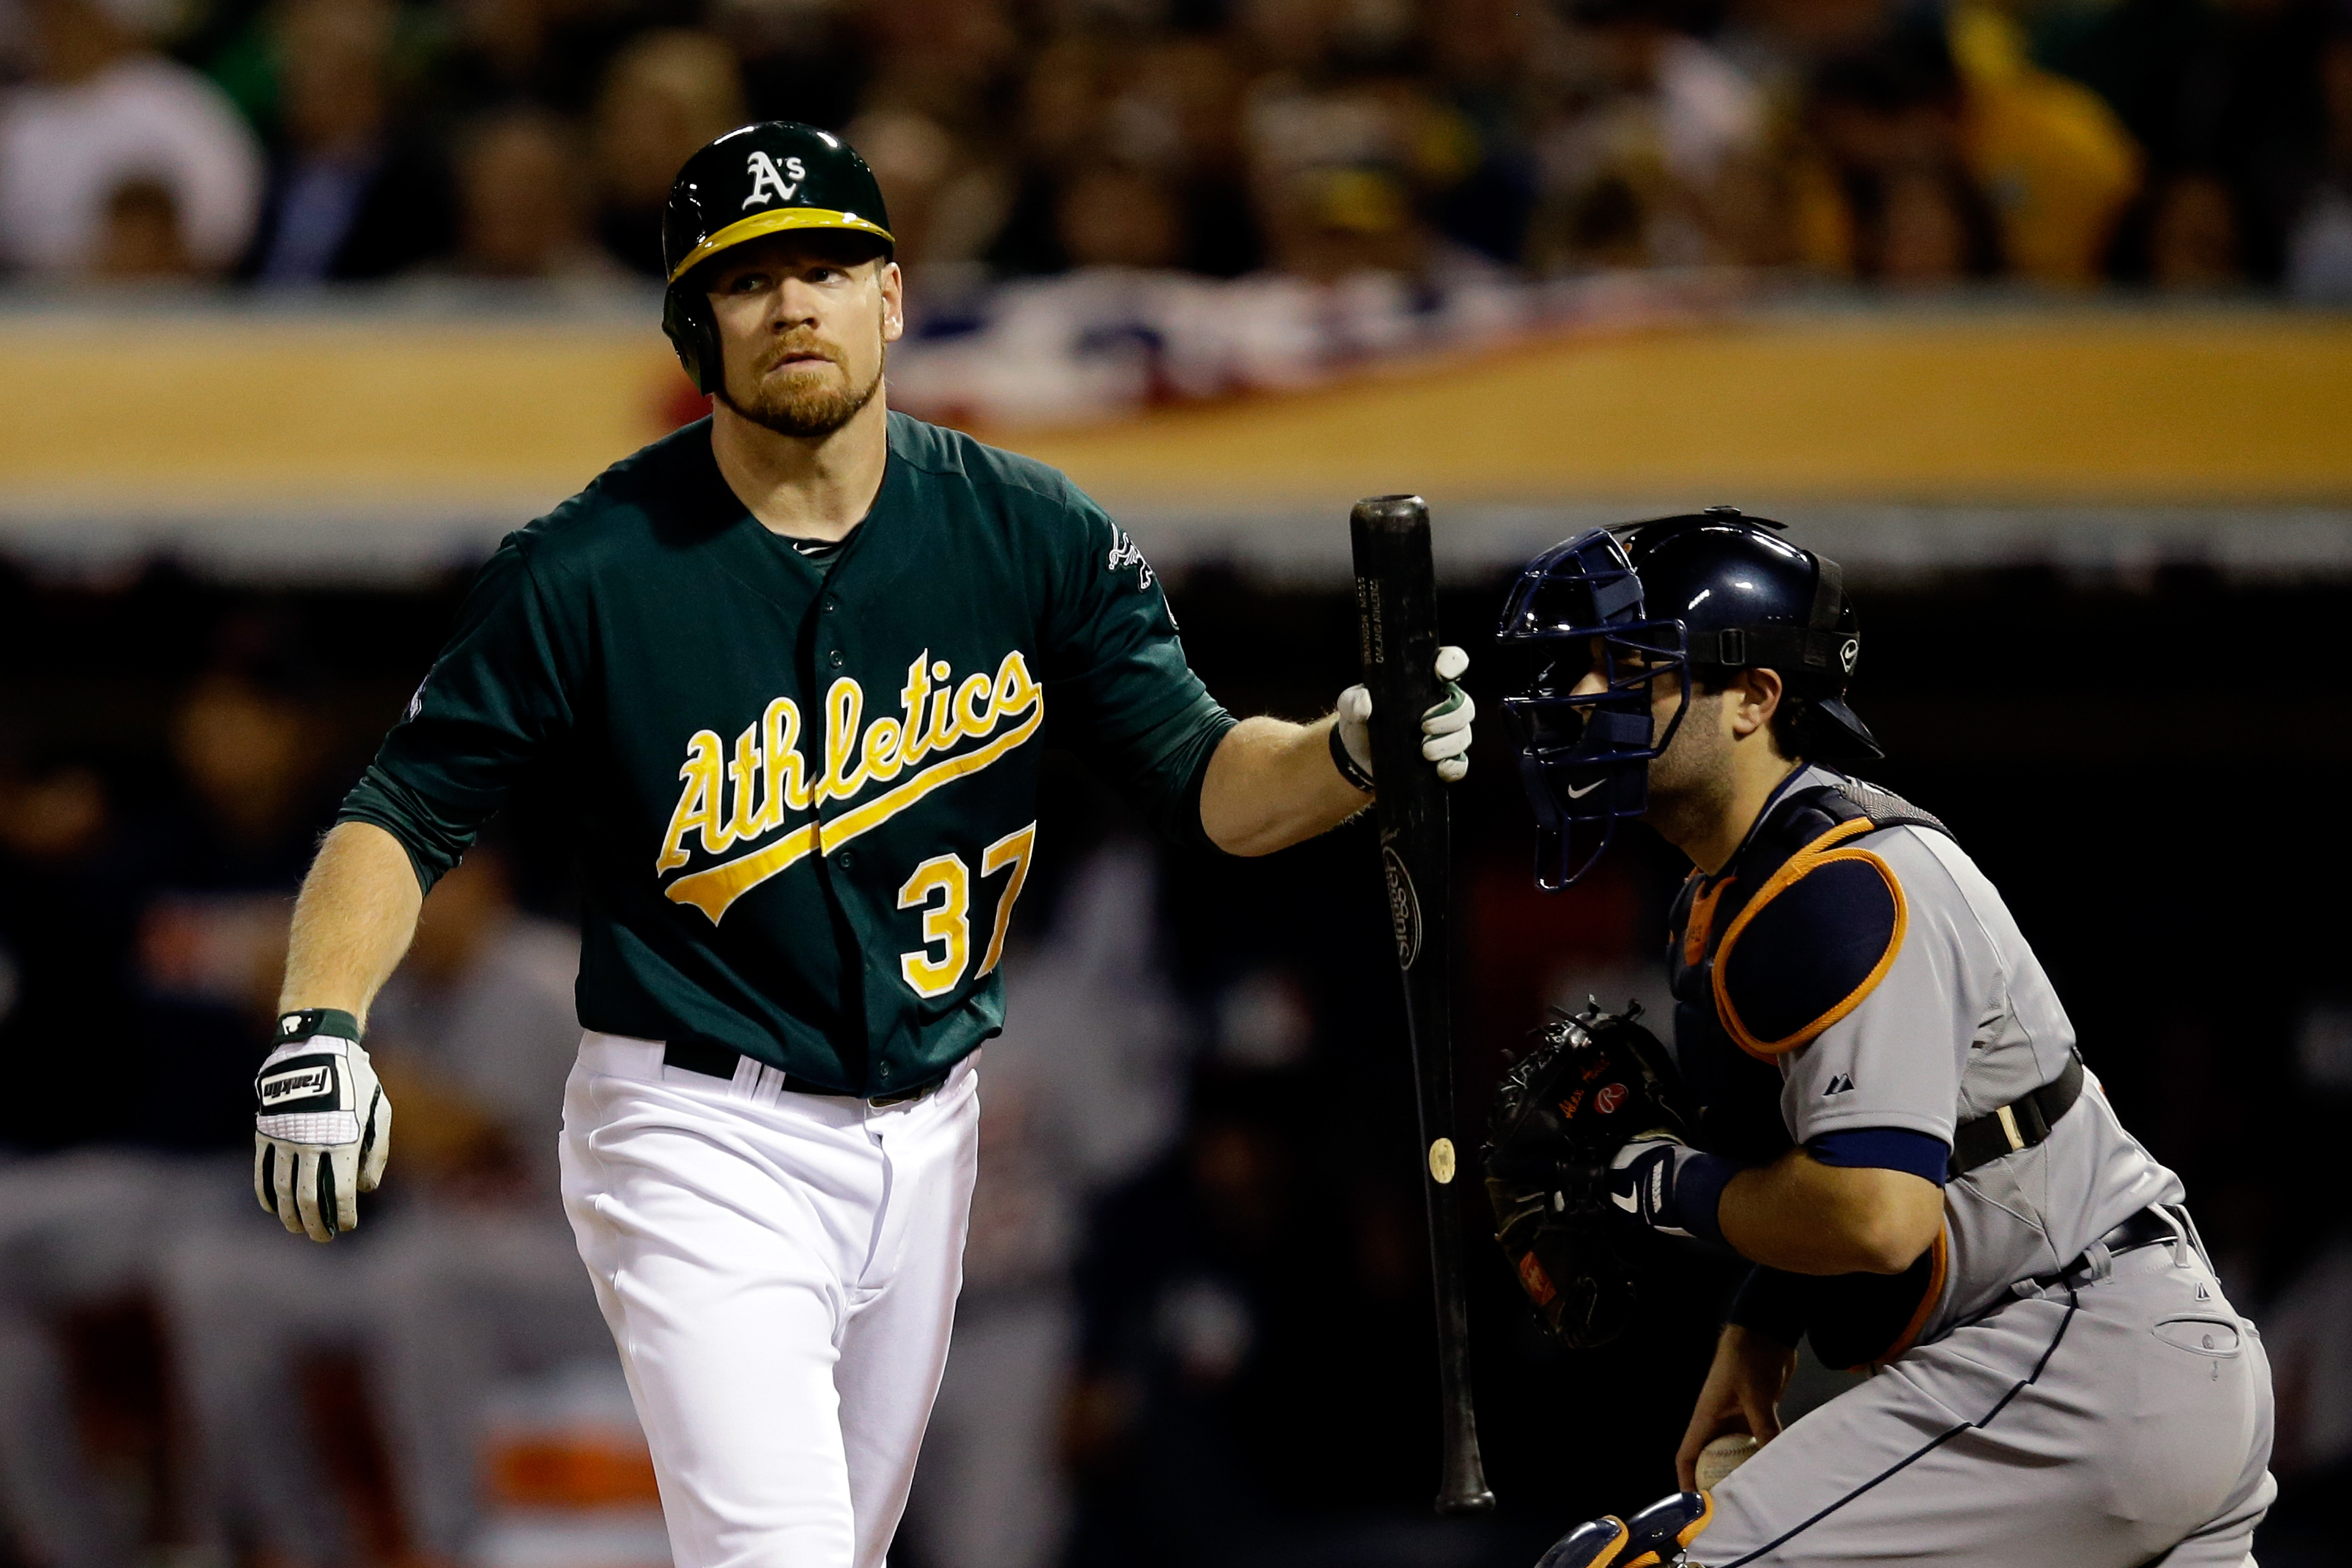 Brandon Moss has submitted a petition calling for strikeouts to require four strikes rather than three.